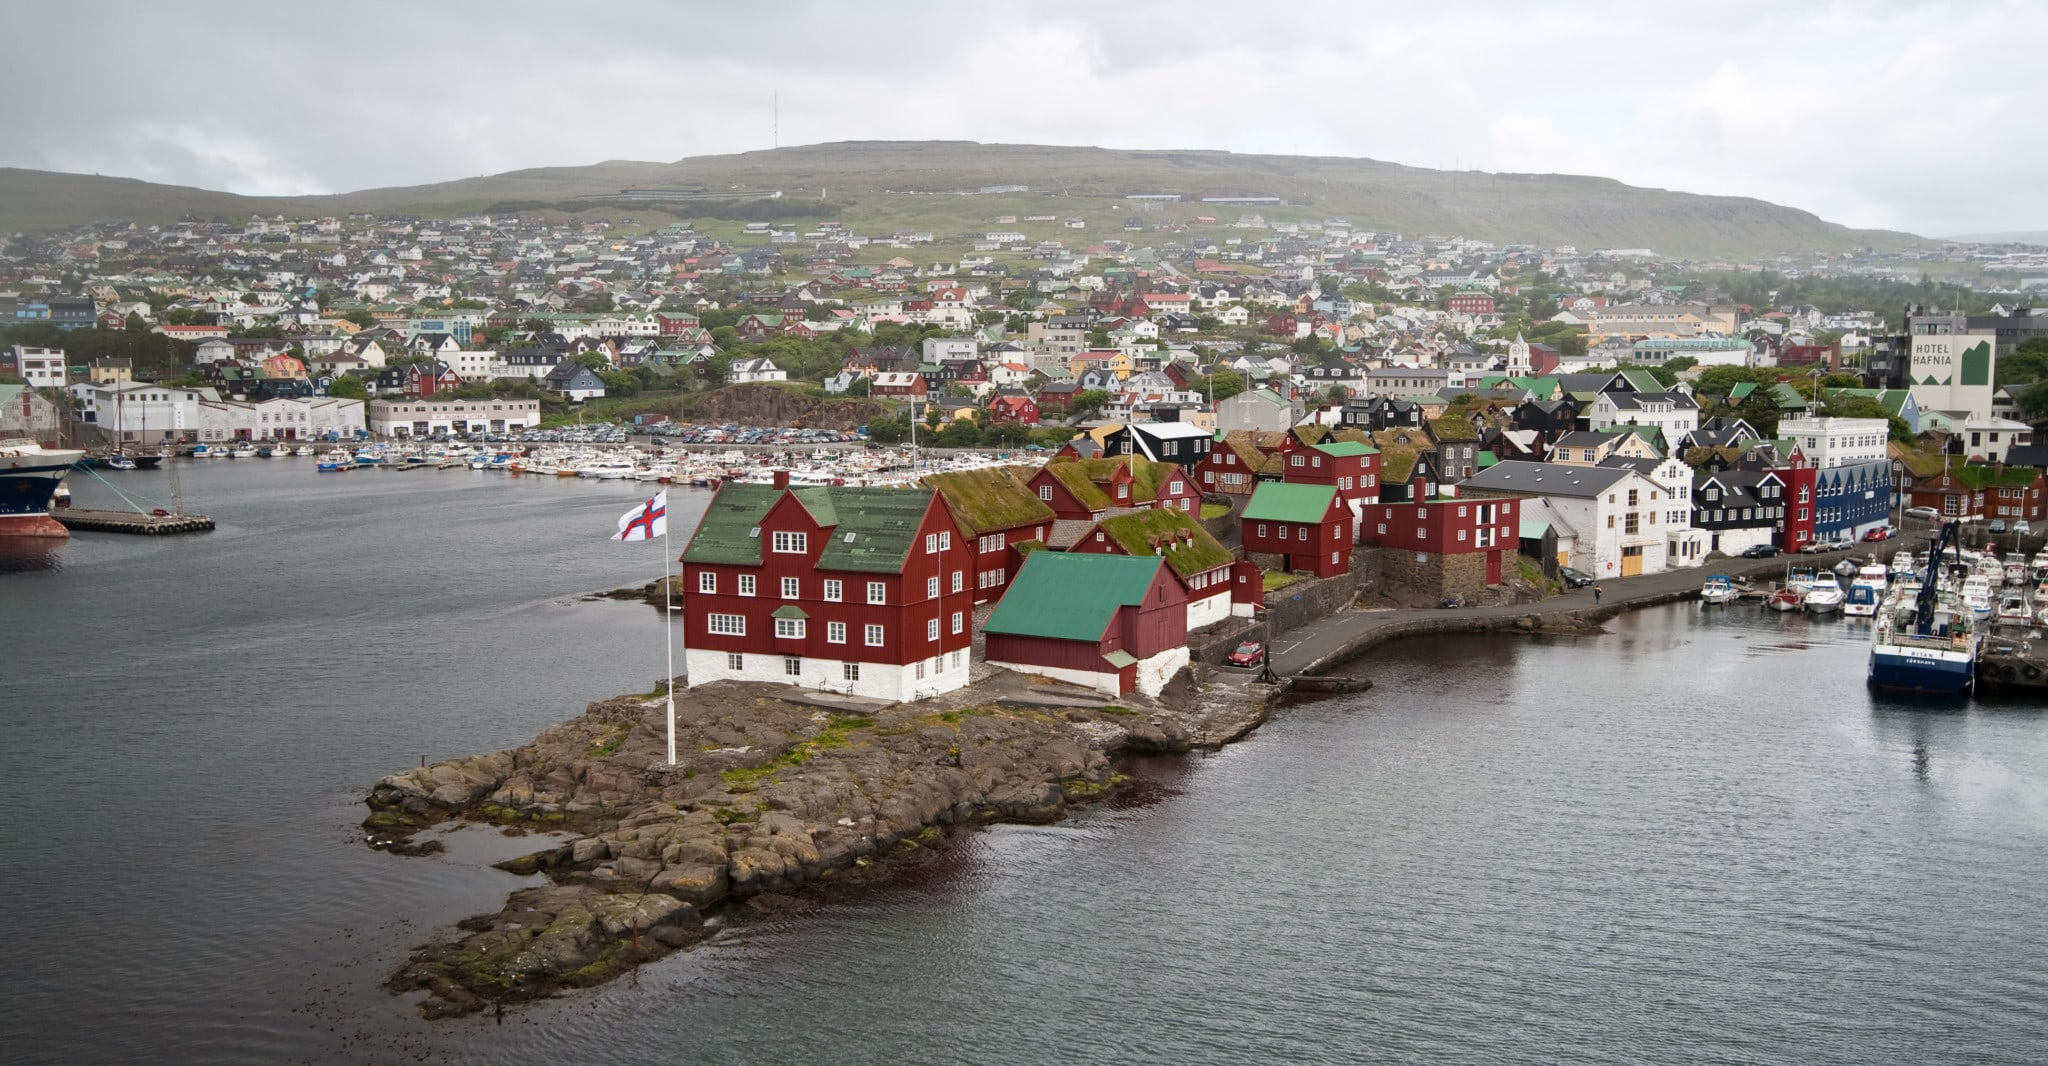 Tinganes is a peninsula in Tórshavn where the Faroe Islands government resides. The town lies on the route between Iceland and the Danish mainland.